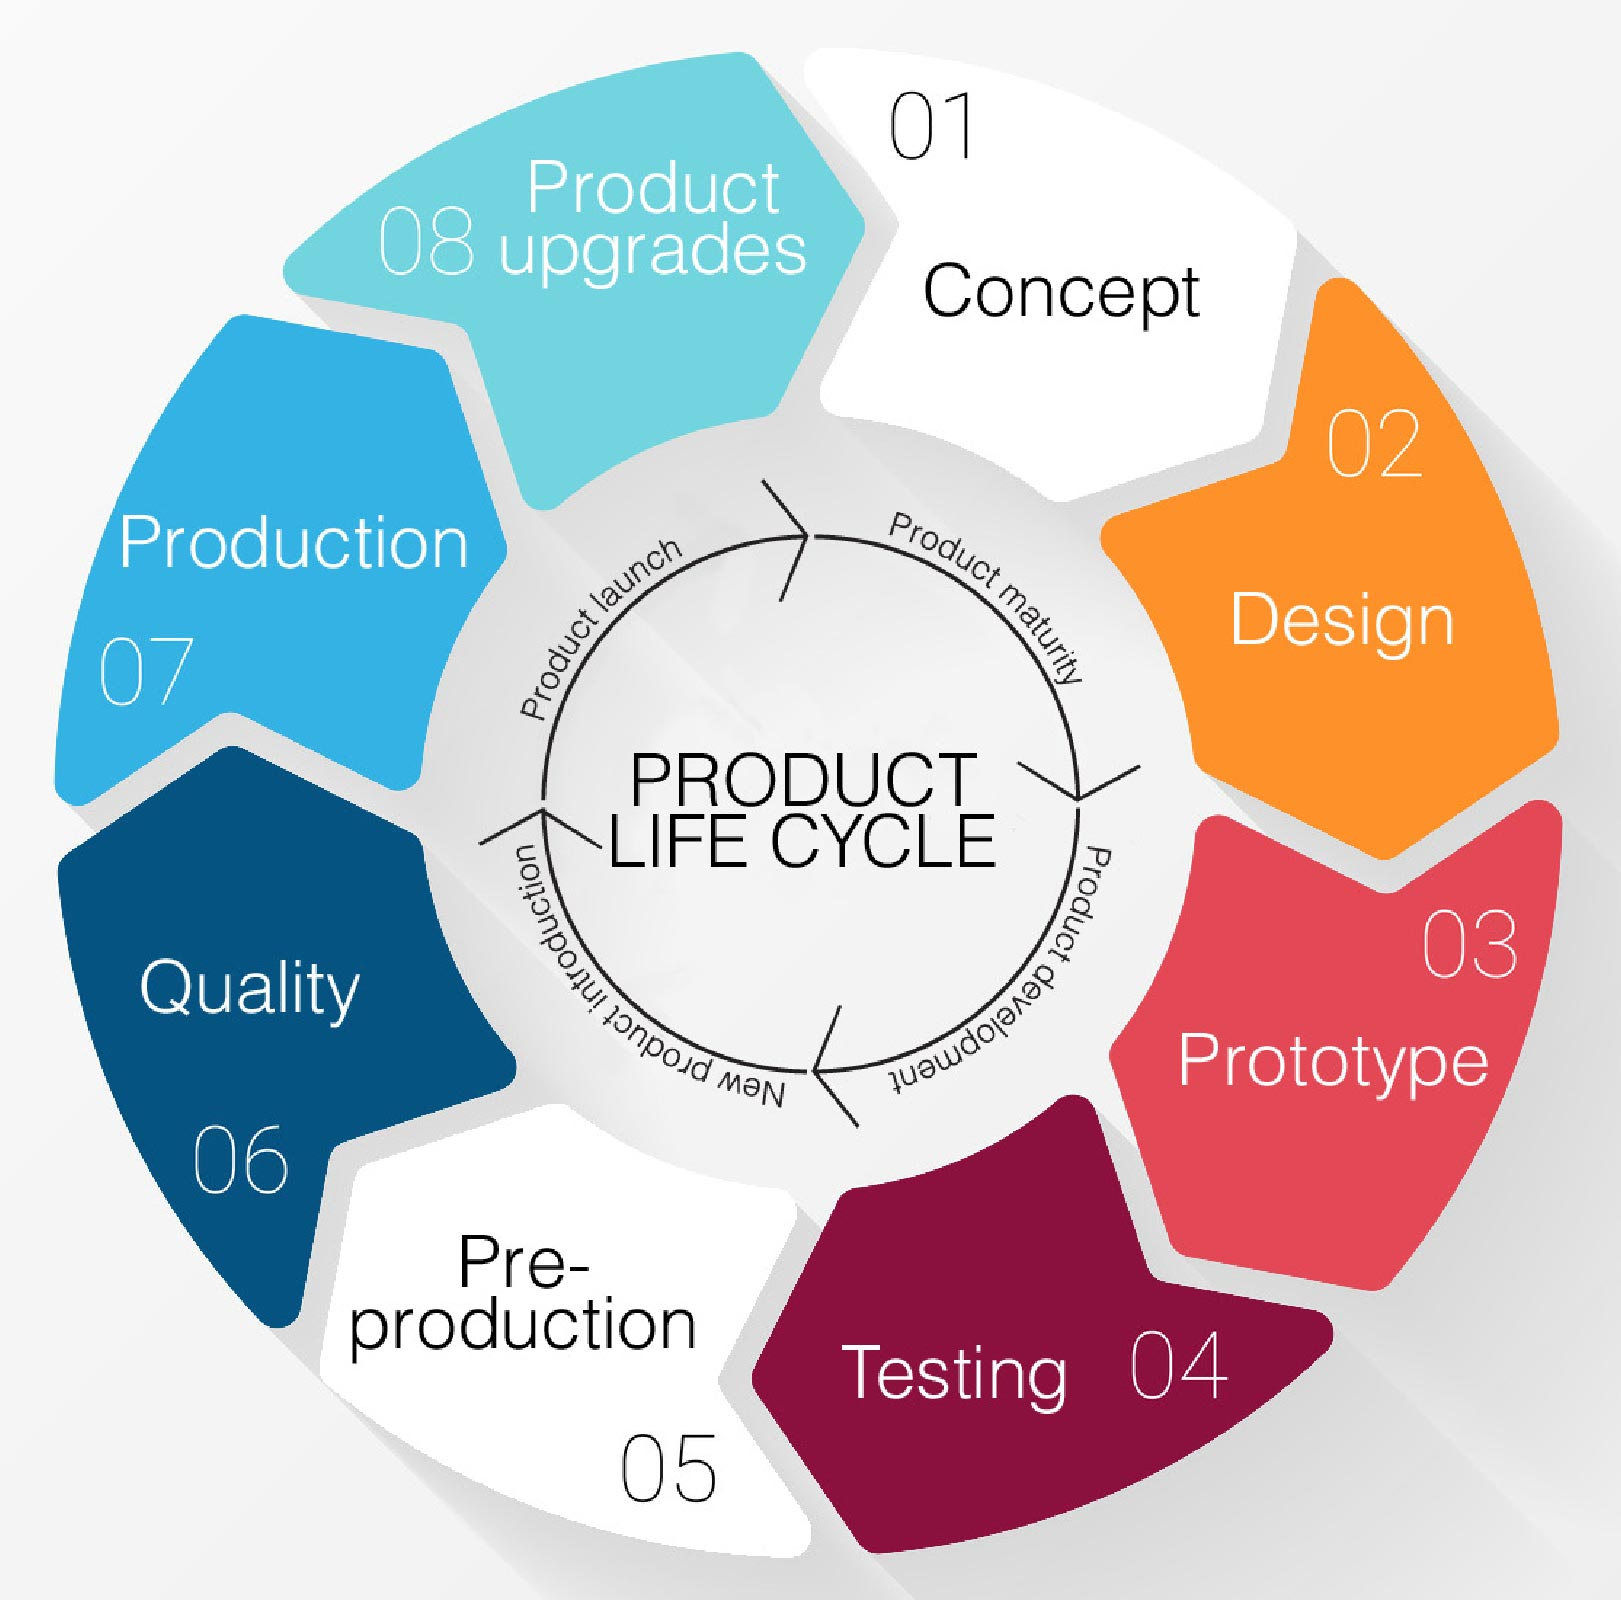 New product introduction for Product development and design for manufacturing